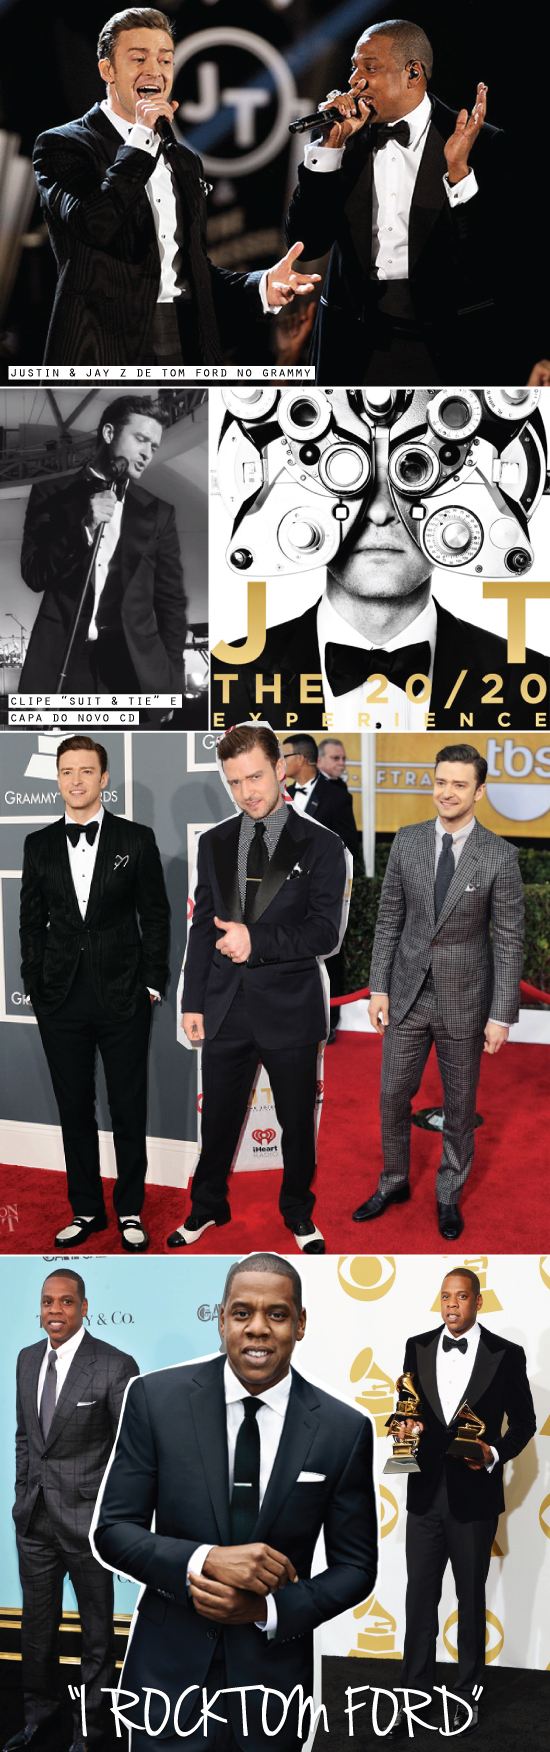 tom-ford-justin-timberlake-jay-z-grammy-tuxedo-terno-musica-clip-video-suit-&-tie-the-20/20-experience-magna-carta-holy-grail